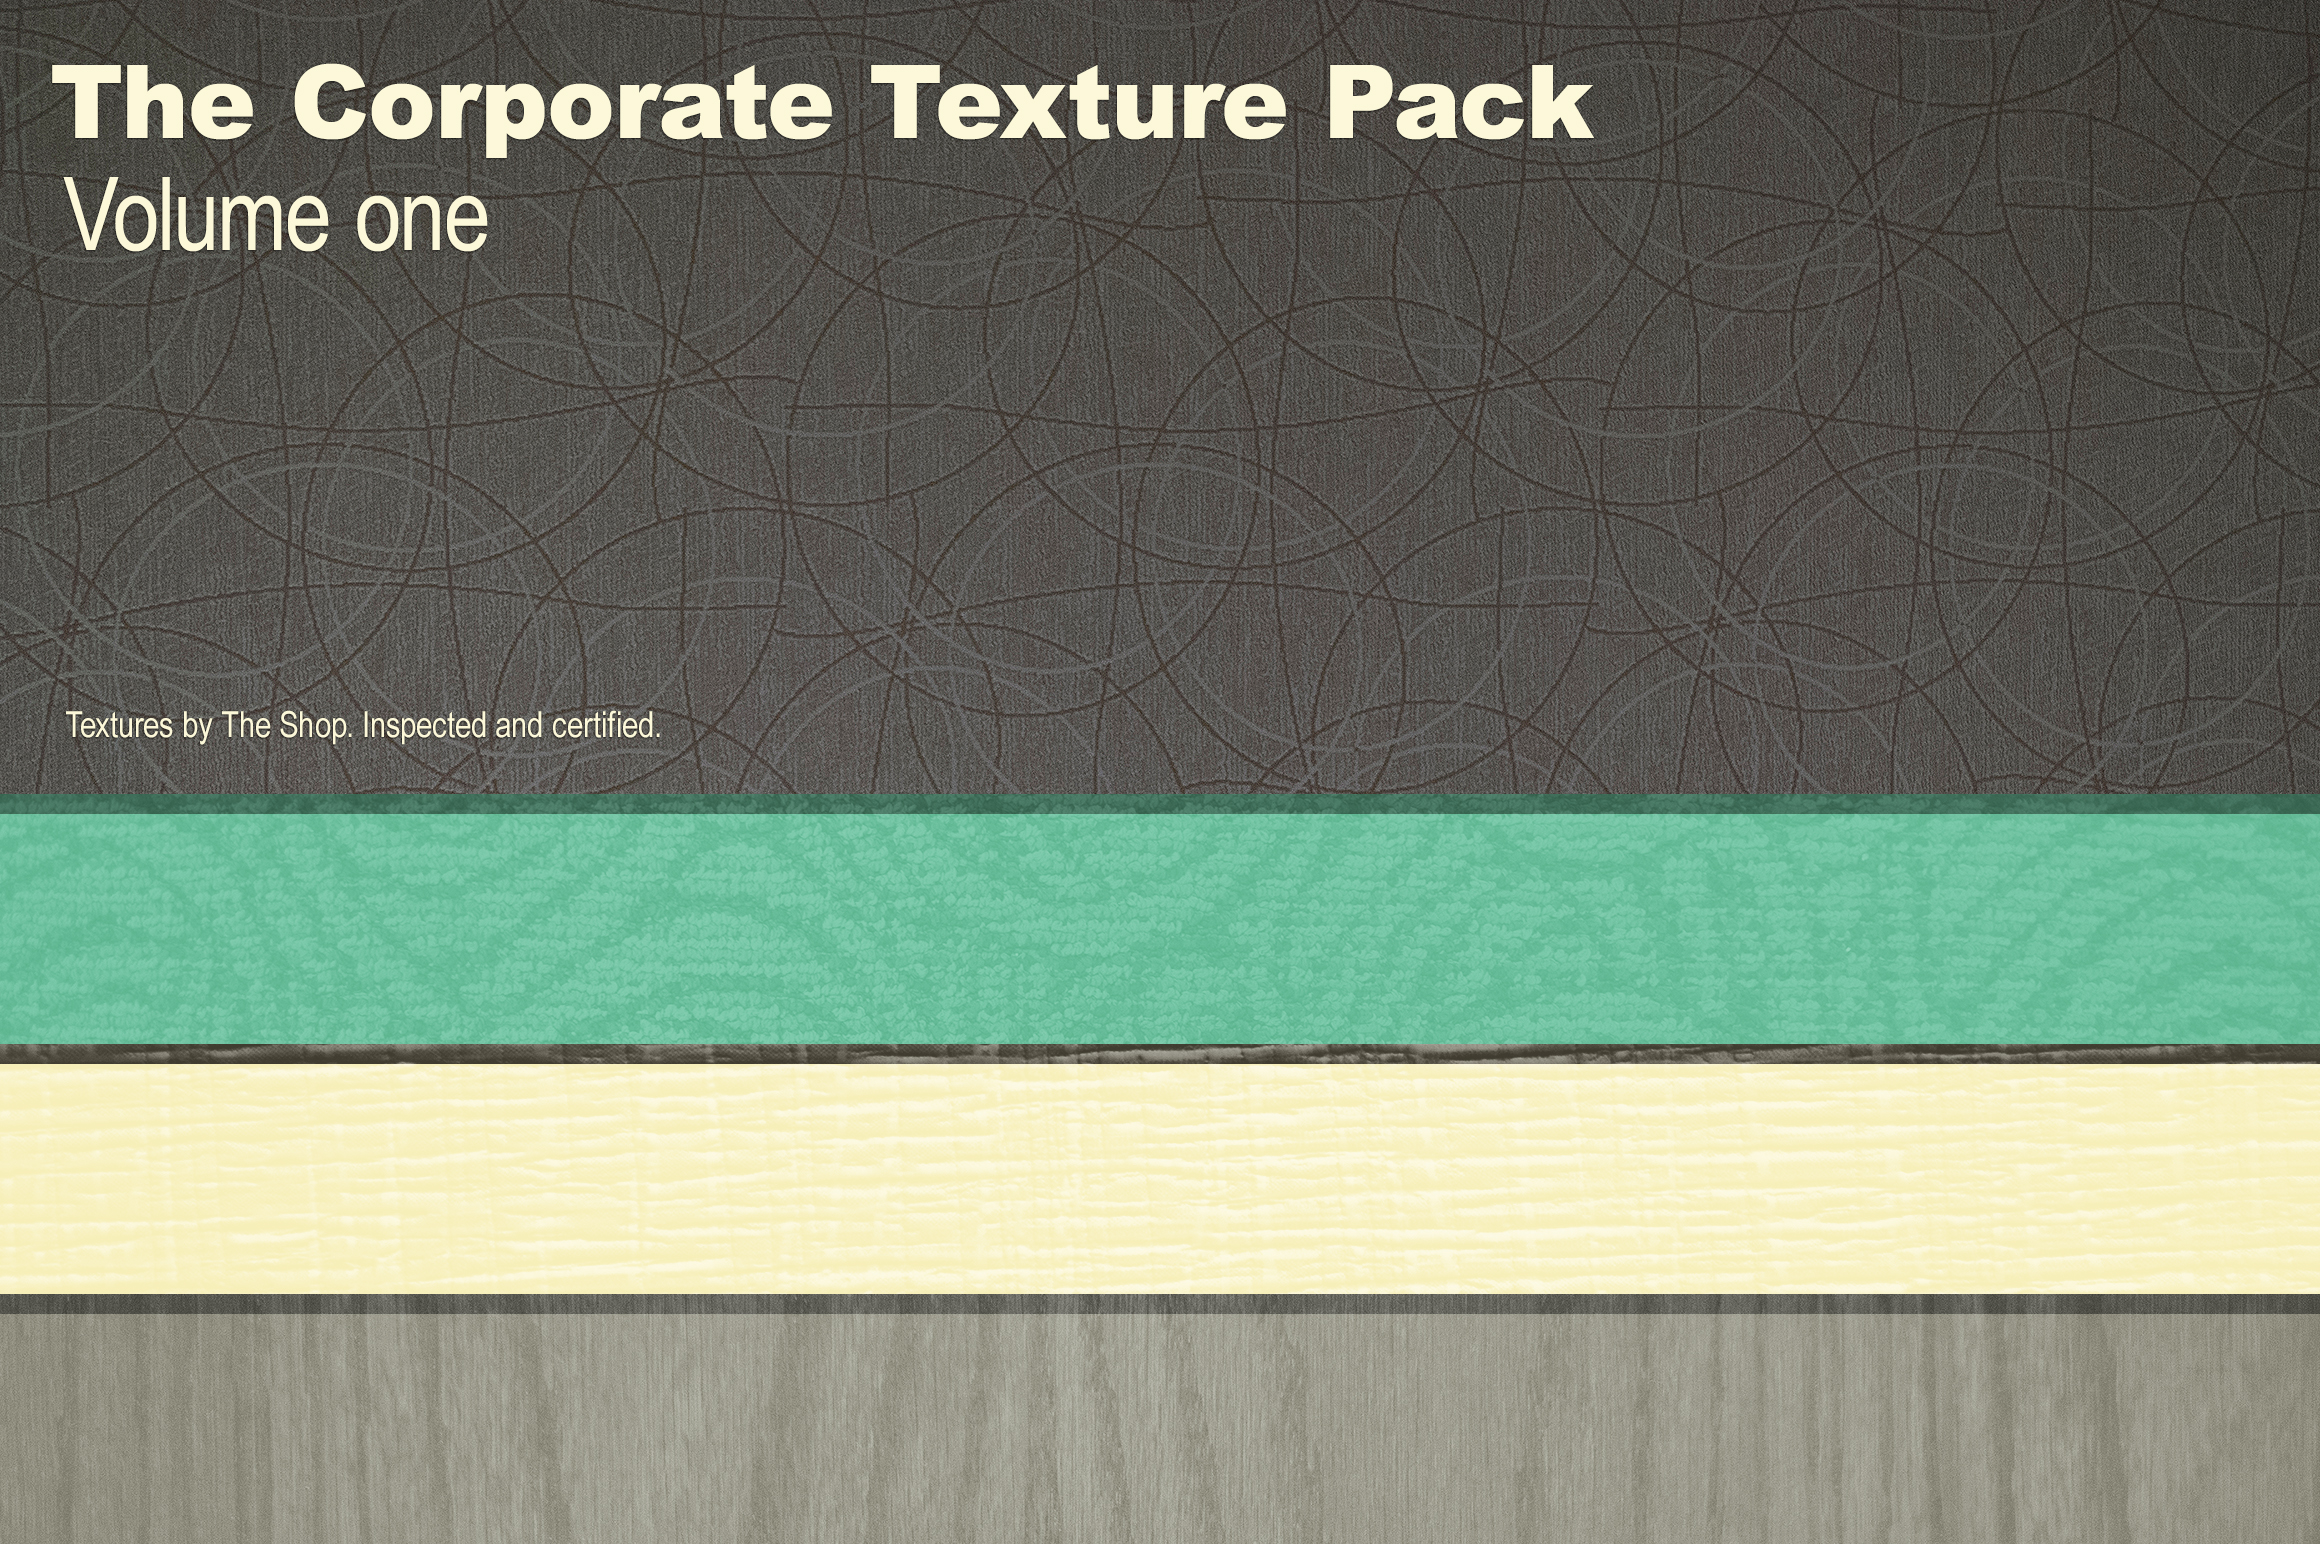 The Corporate Texture Pack Volume 01 Graphic Textures By theshopdesignstudio - Image 1